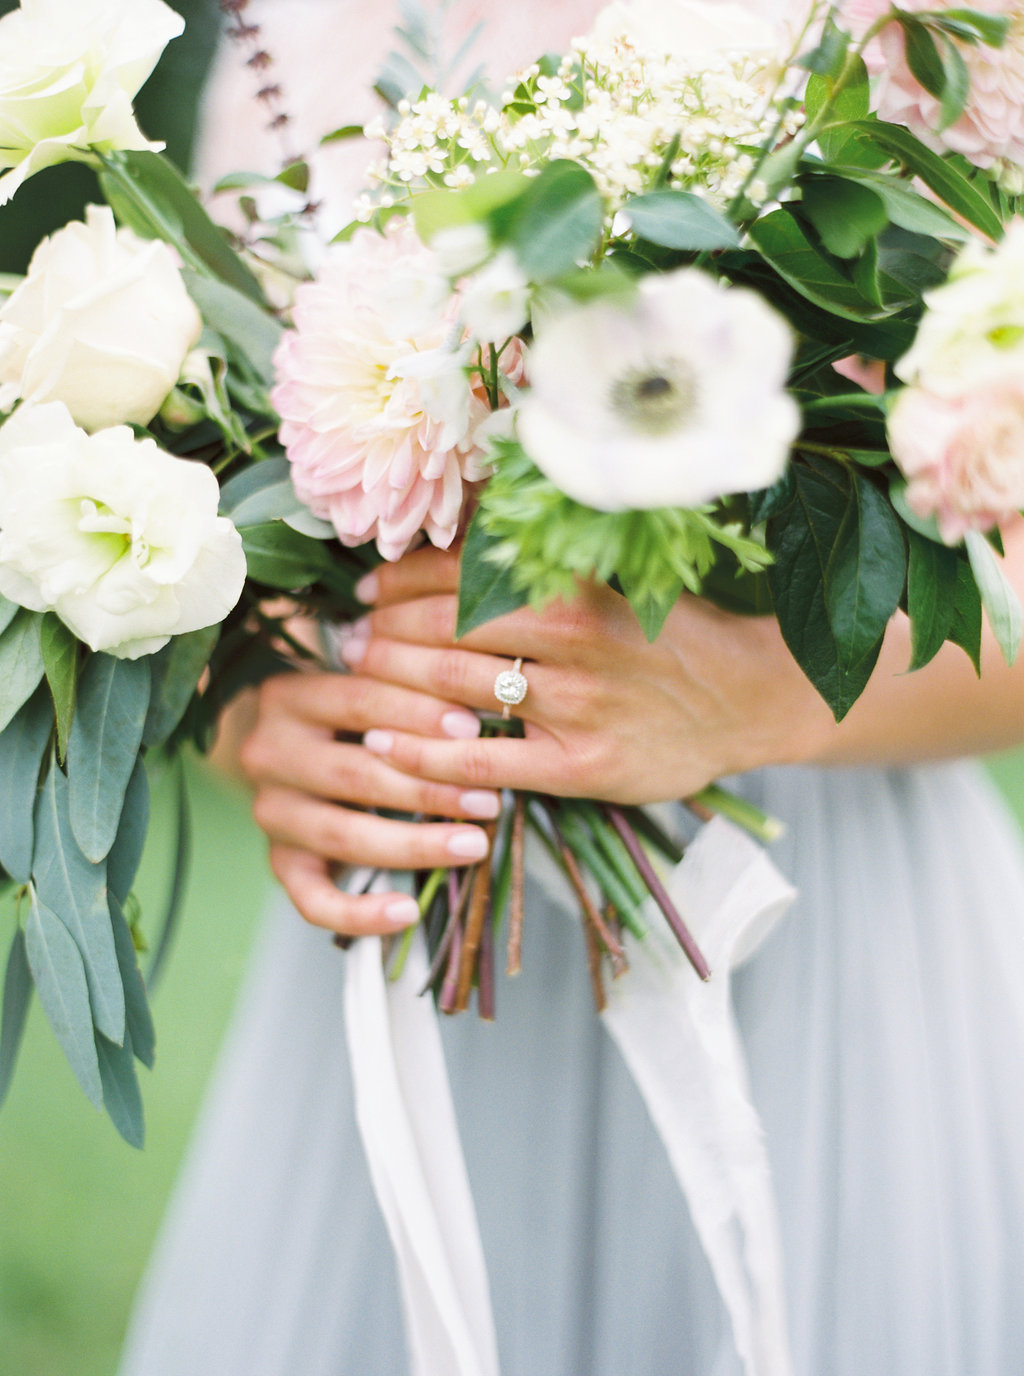 Halo Engagement Ring and Pastel Bouquet | Credit: Courtney Leigh